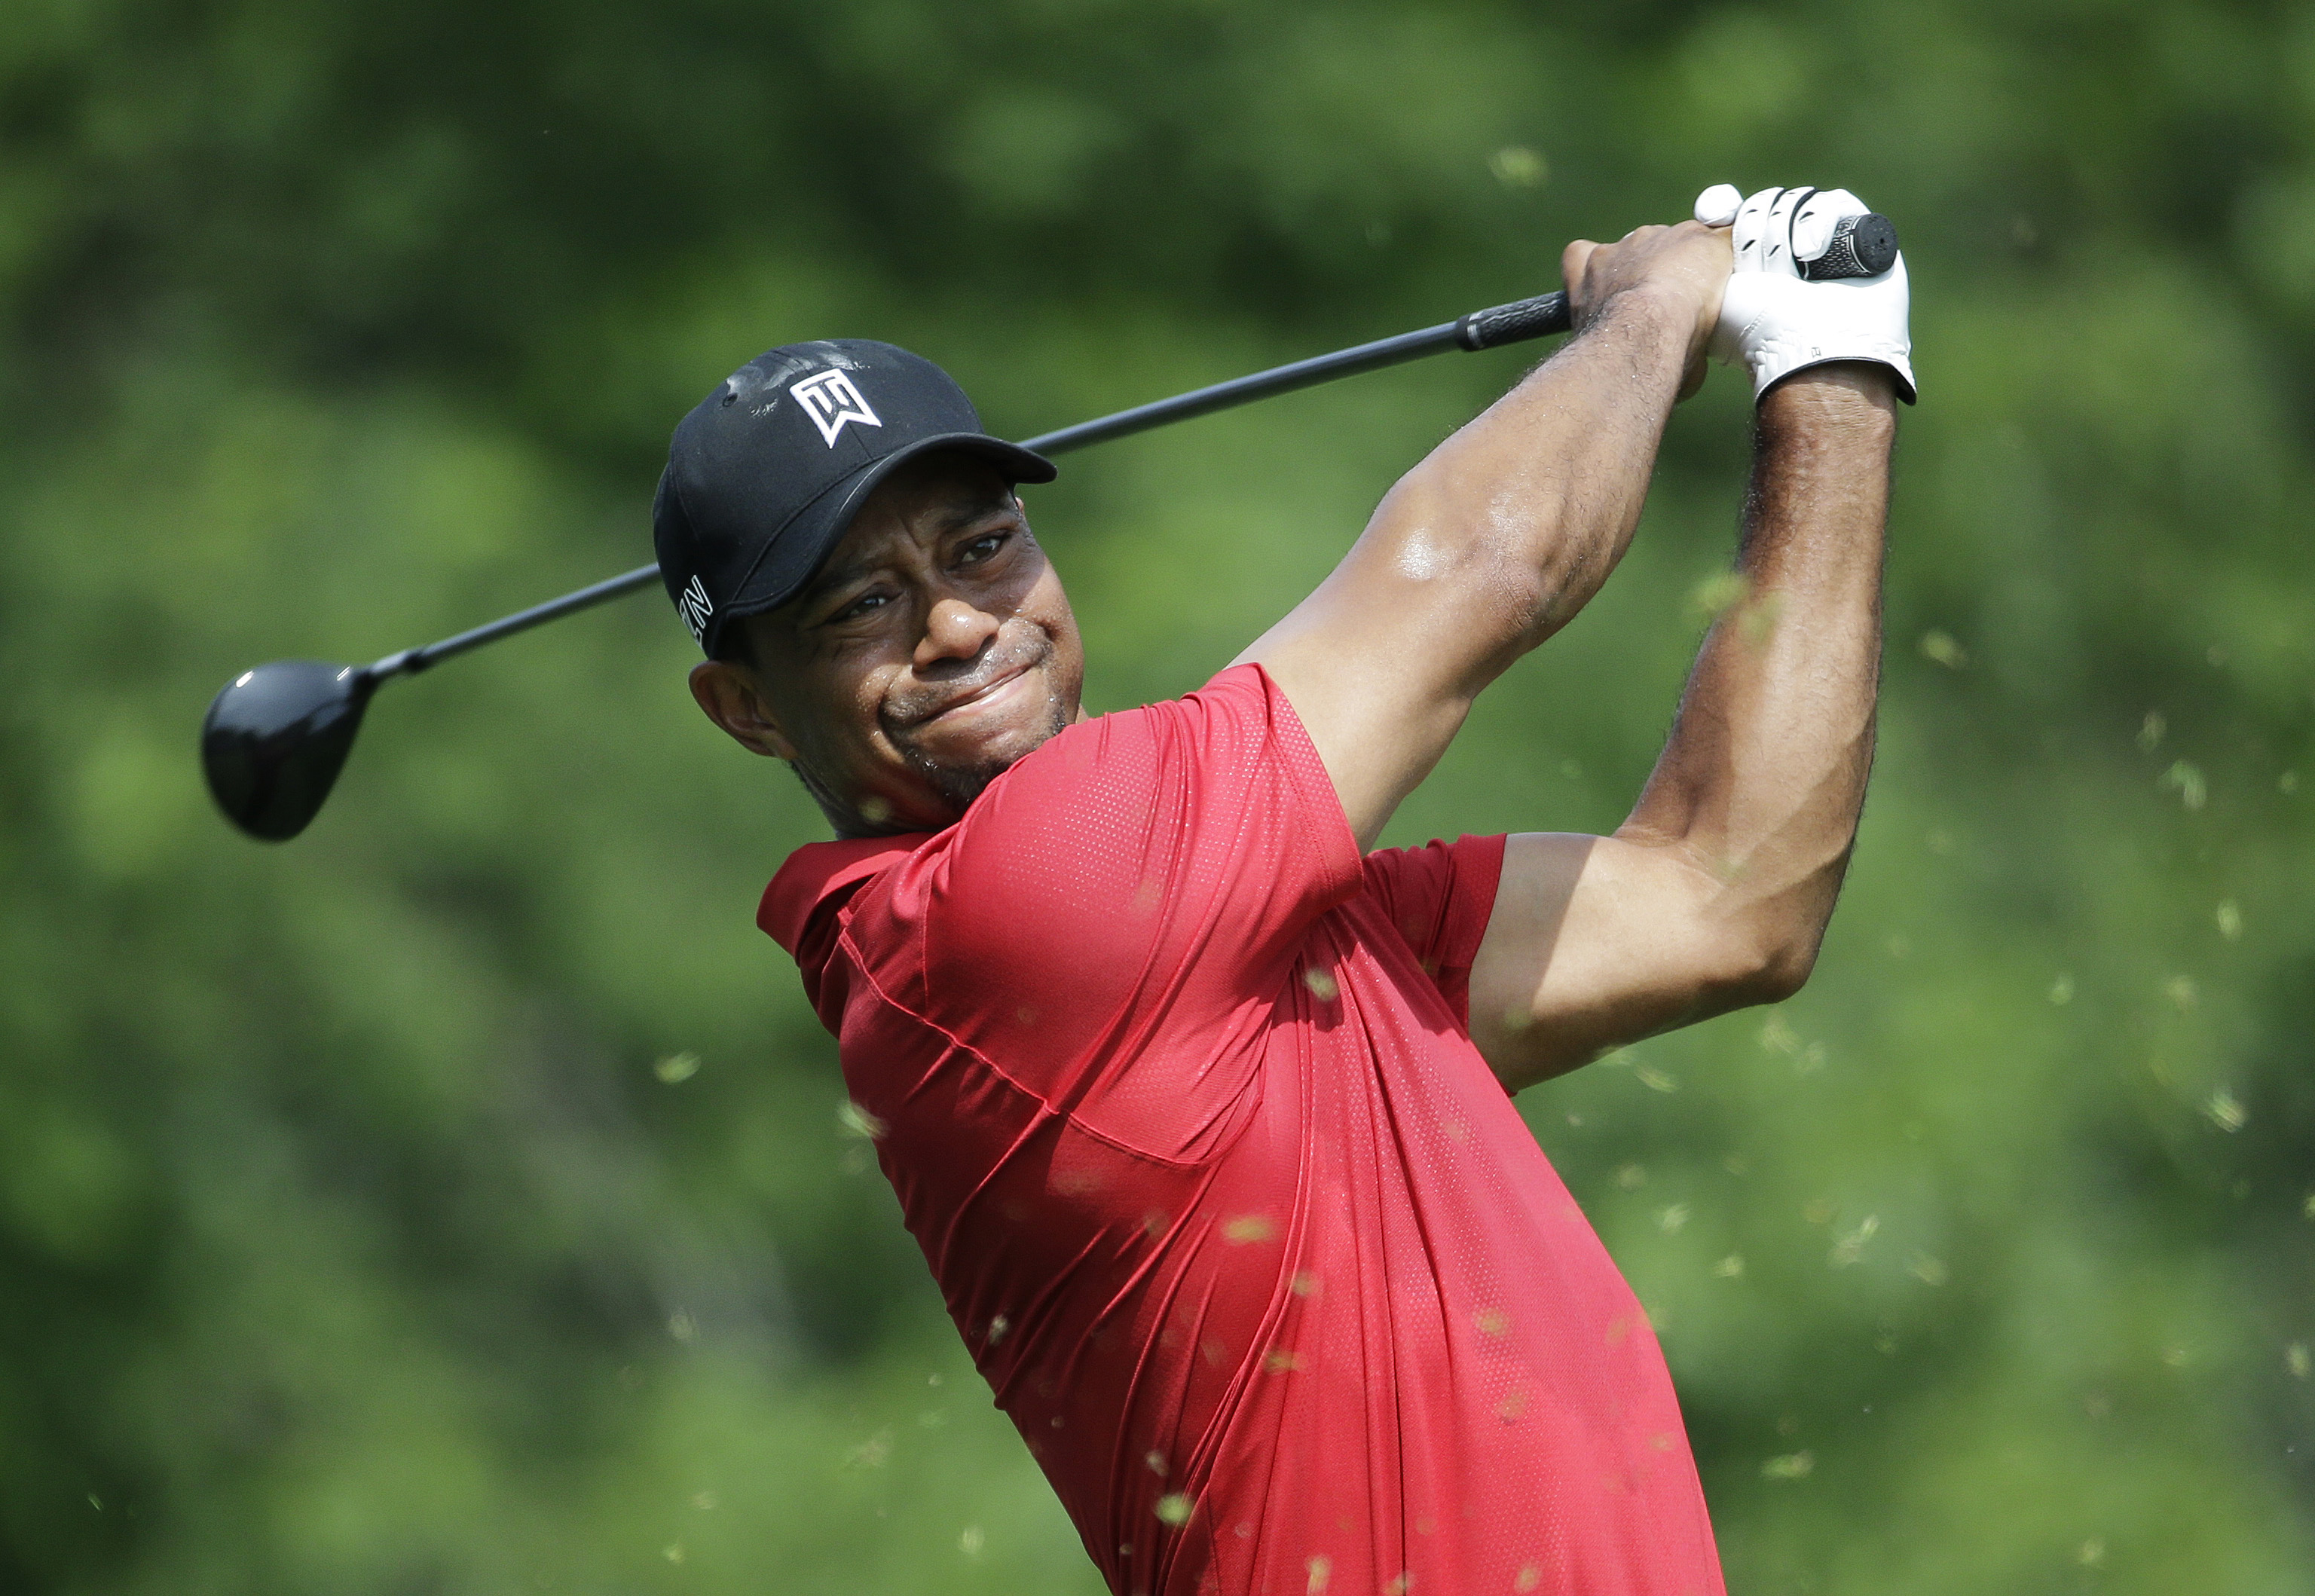 Tiger Woods tees off on the 18th hole during the final round of the Memorial golf tournament Sunday, June 7, 2015, in Dublin, Ohio. (AP Photo/Darron Cummings)